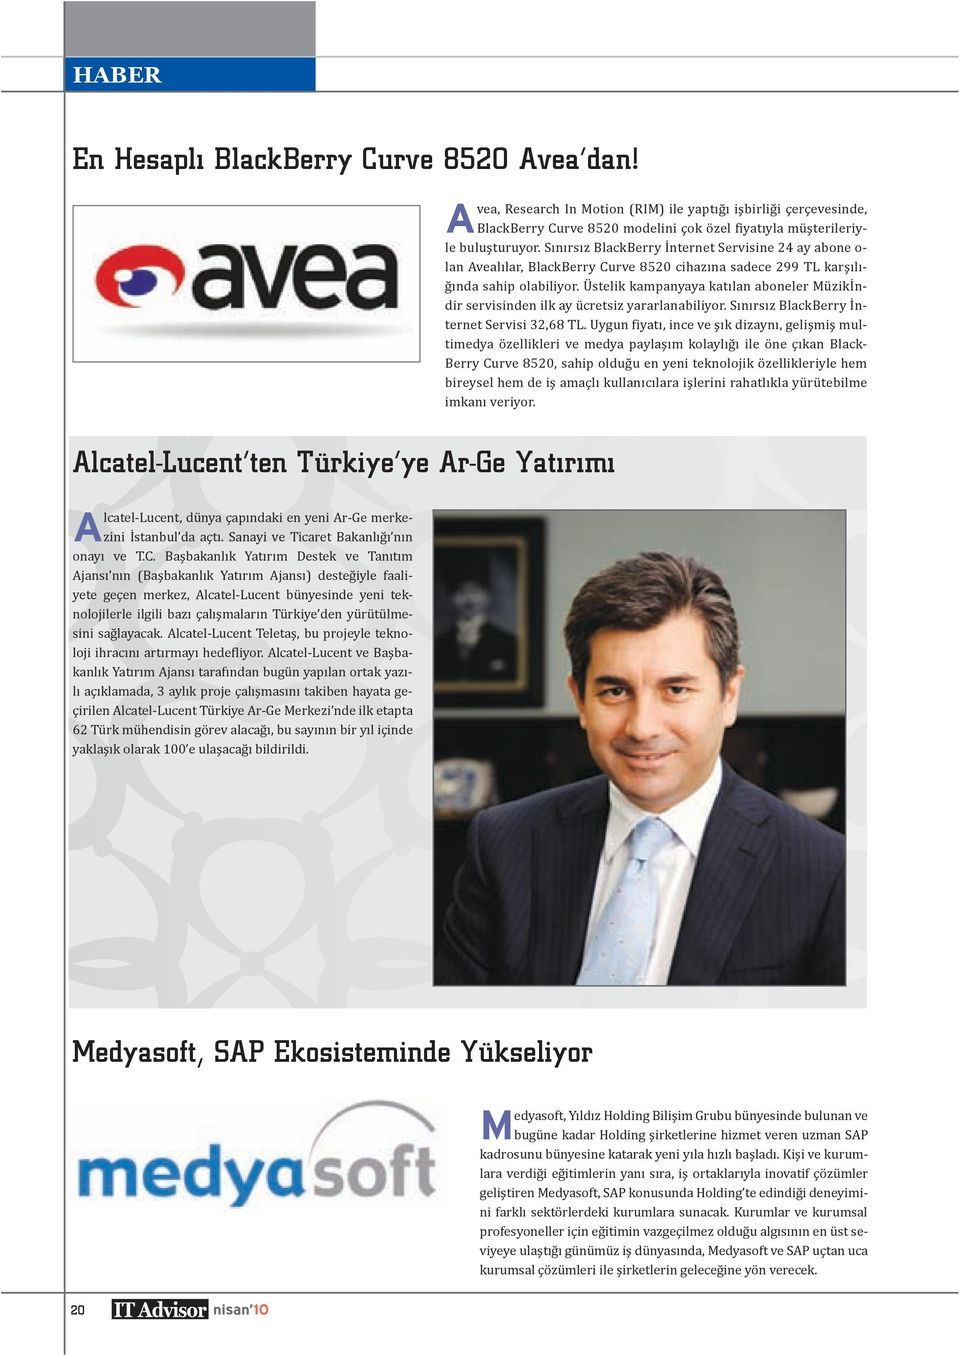 A Alcatel-Lucent ten Türkiye ye